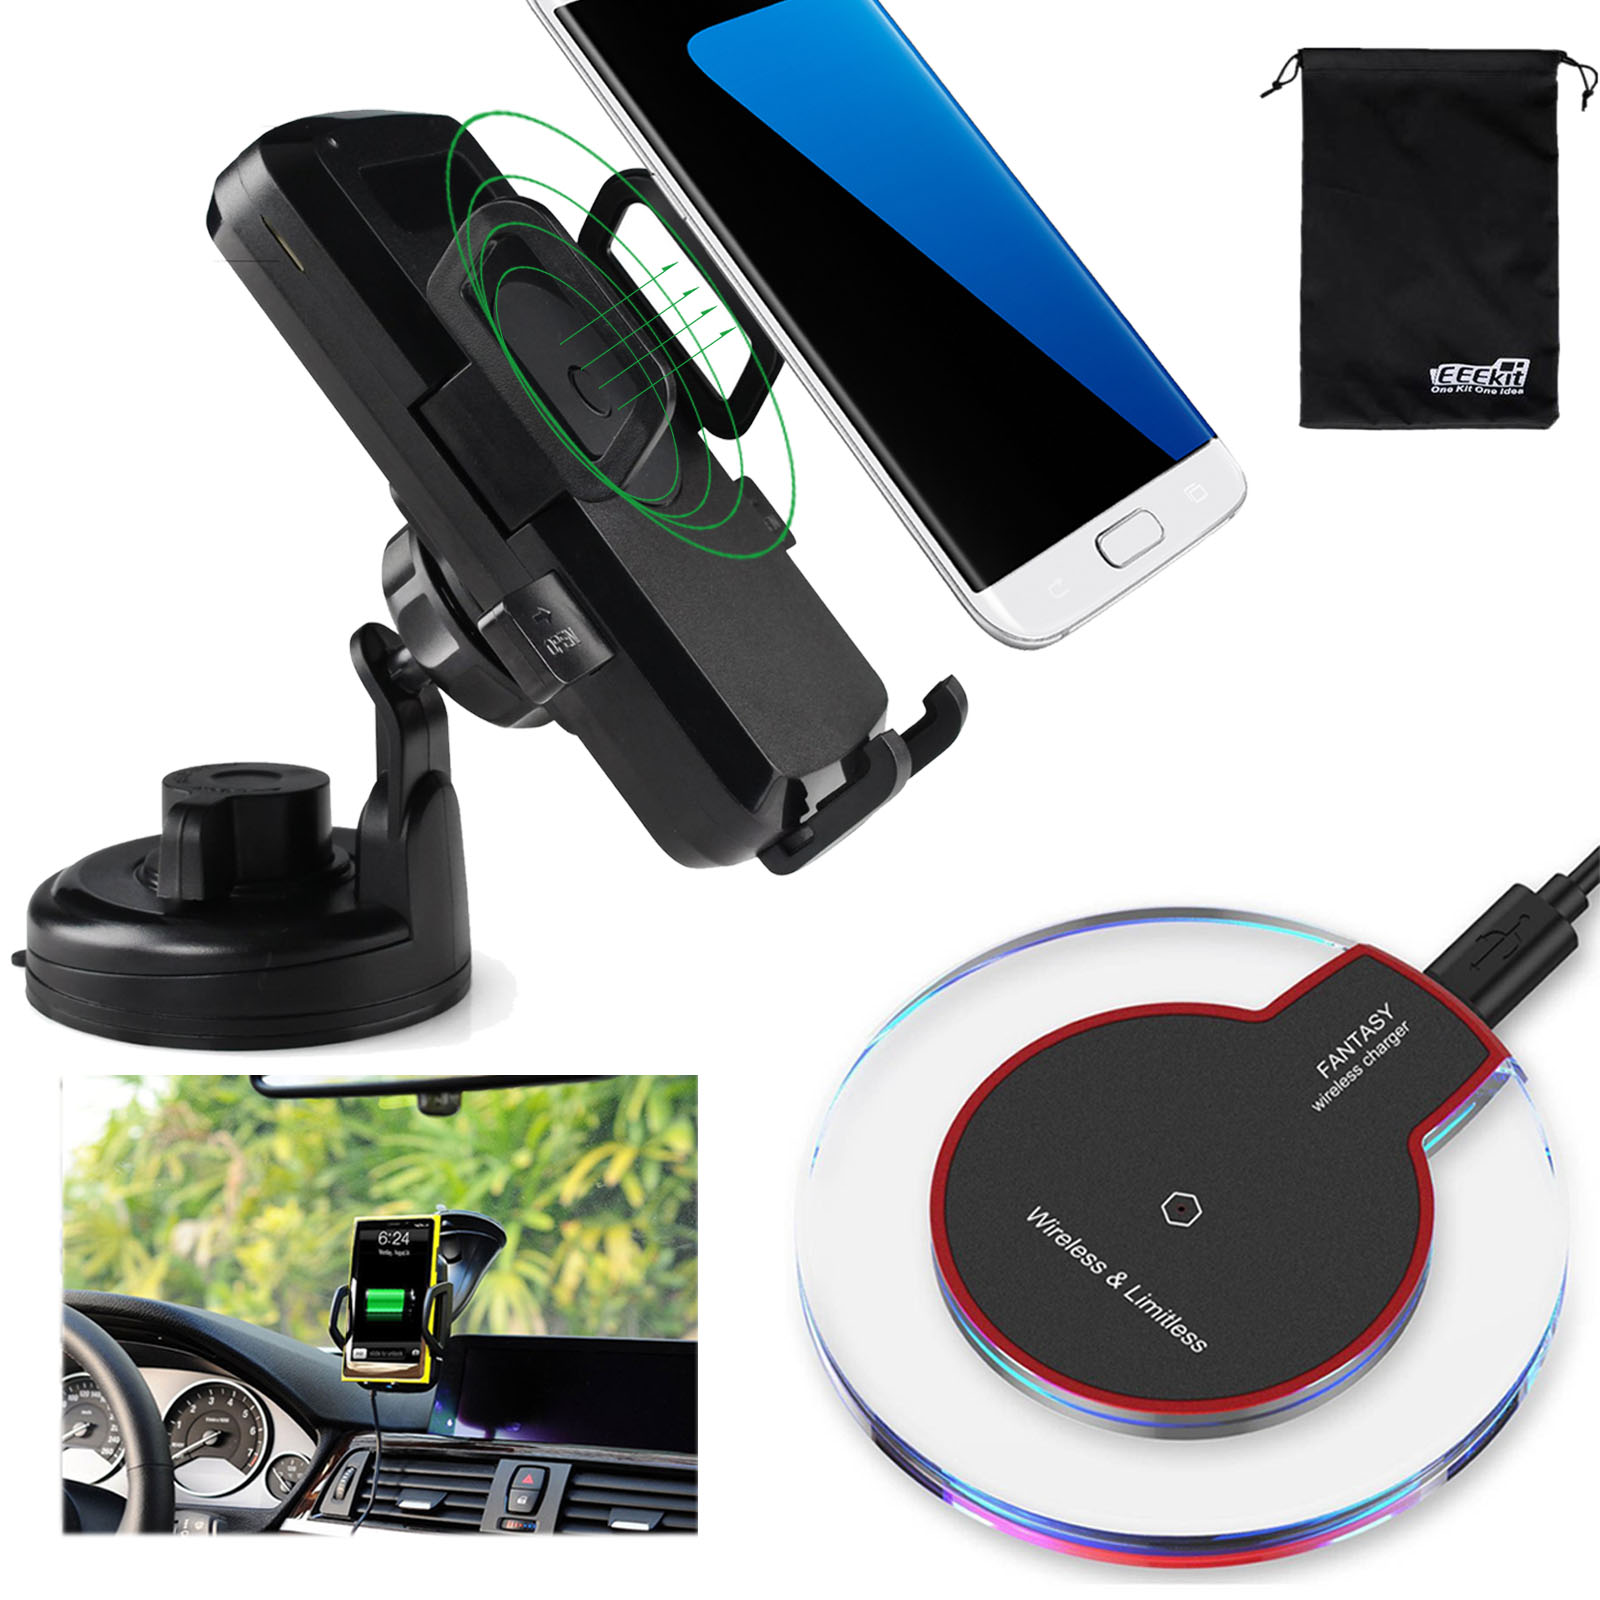 Qi Wireless Charging Car Mountwireless Charger Pad For Samsung Galaxy S S S S